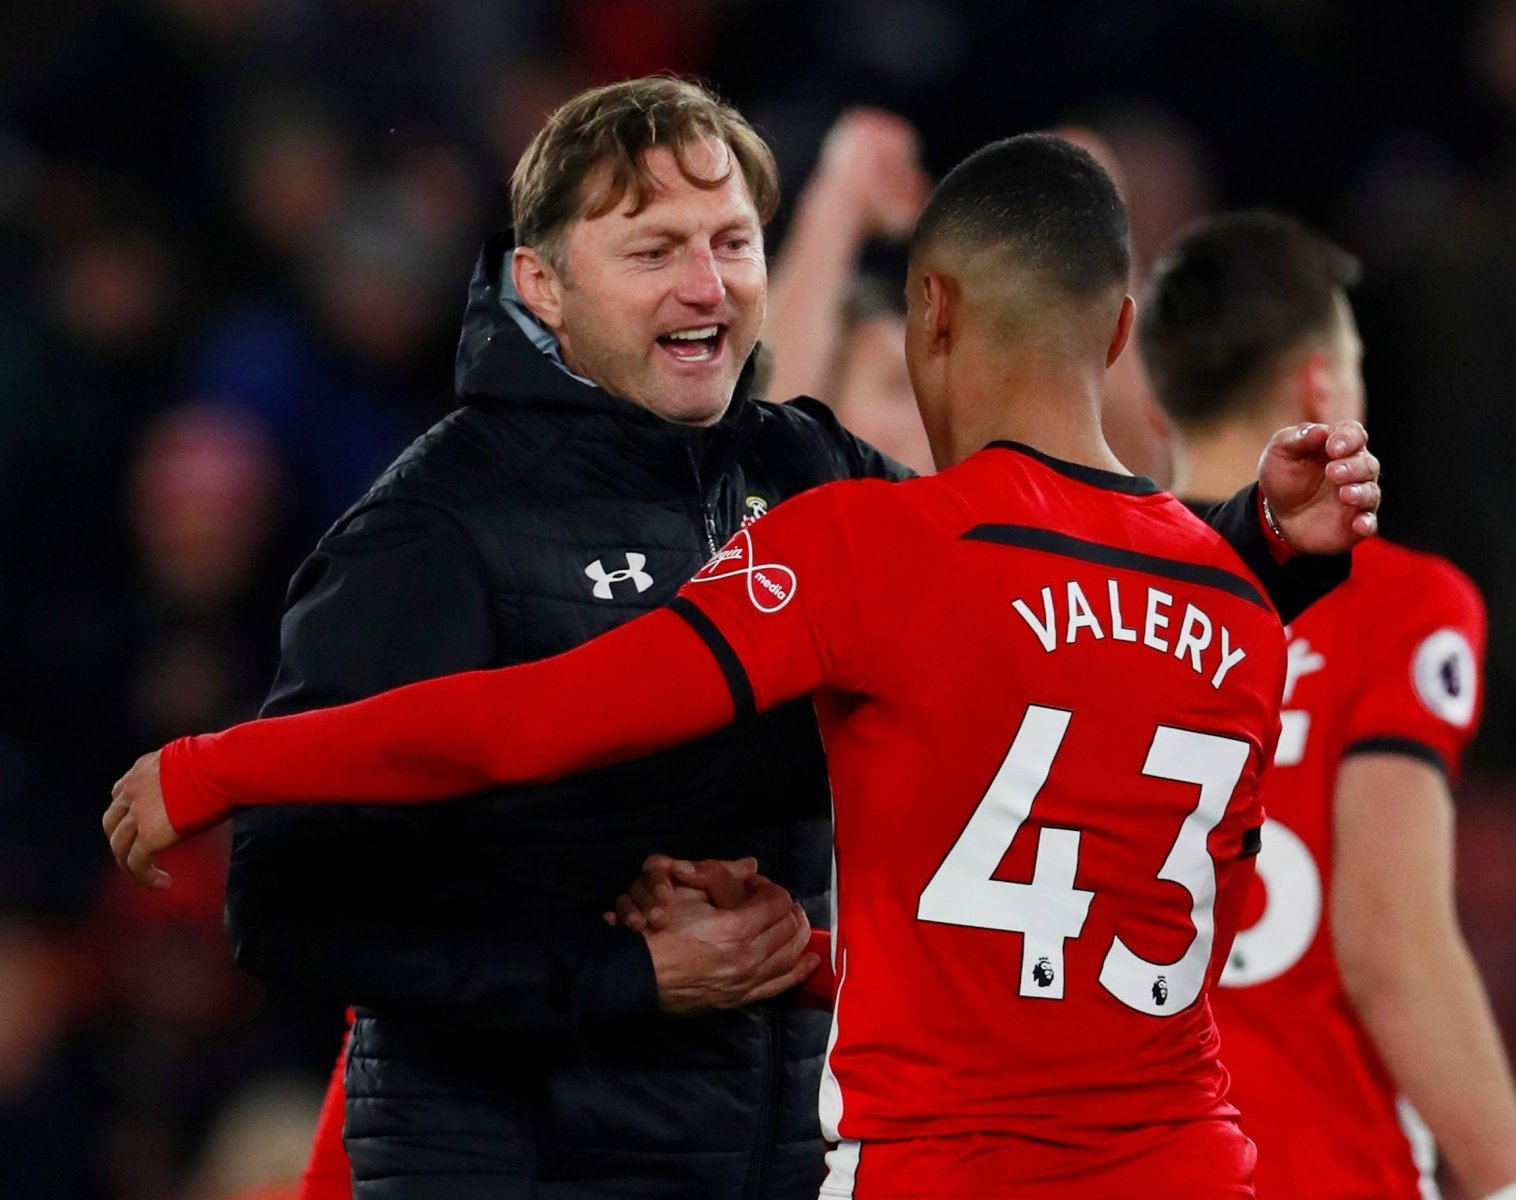 Southampton: Valery's development is proof that Hasenhuttl can bring the good days back